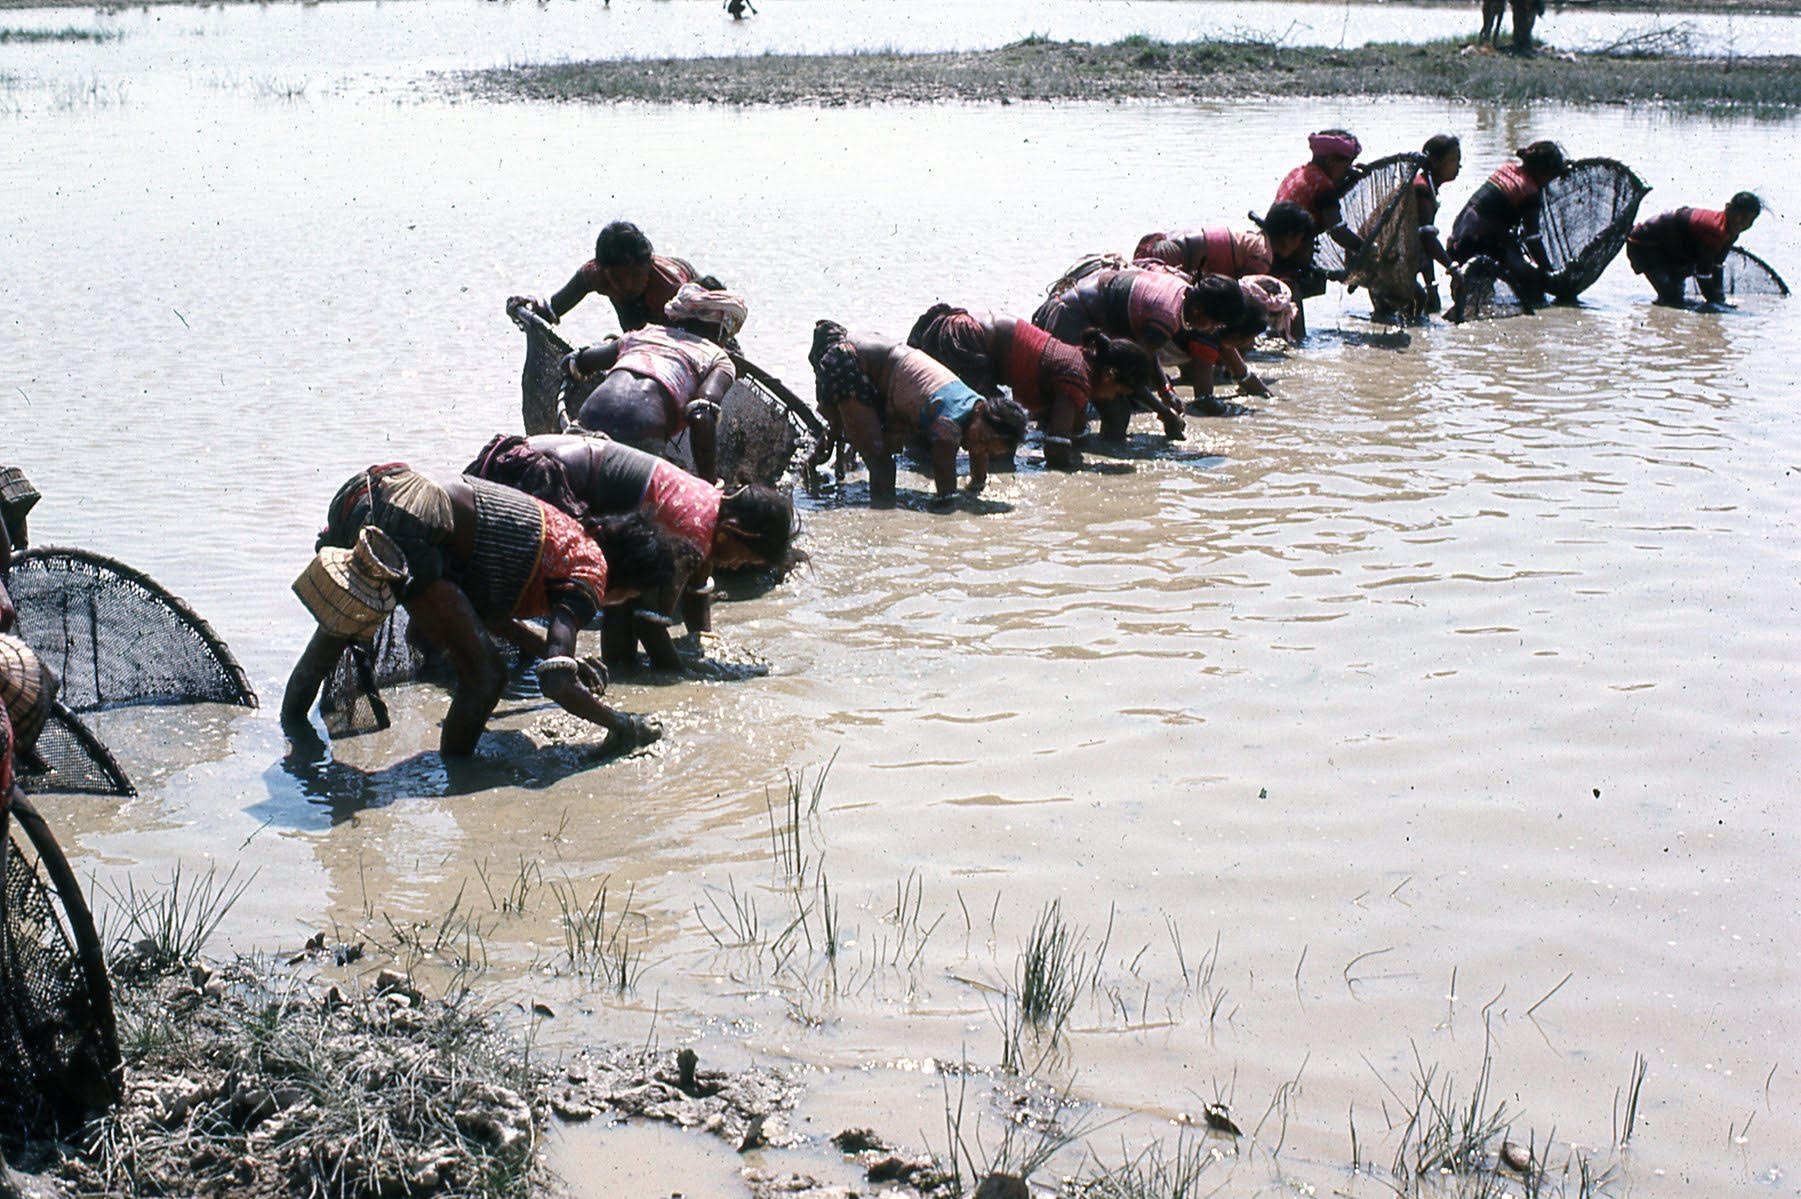 A line of Tharu women fish with nets in a local lake.